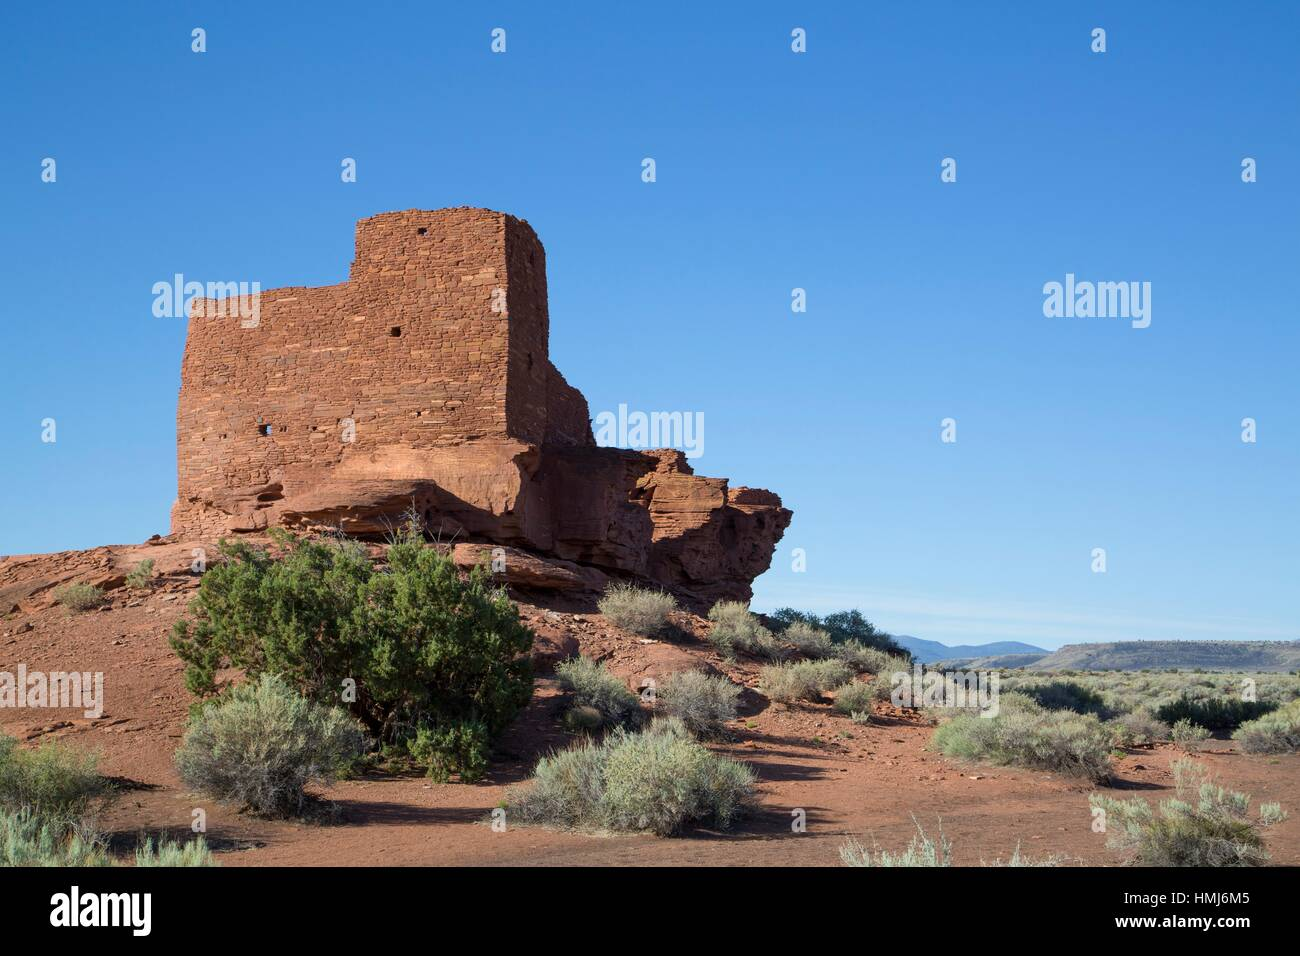 Wukoki Pueblo, Inhabited from approximately 1,100 AD to 1,250 AD, Wupatki National Monument, Arizona, USA - Stock Image